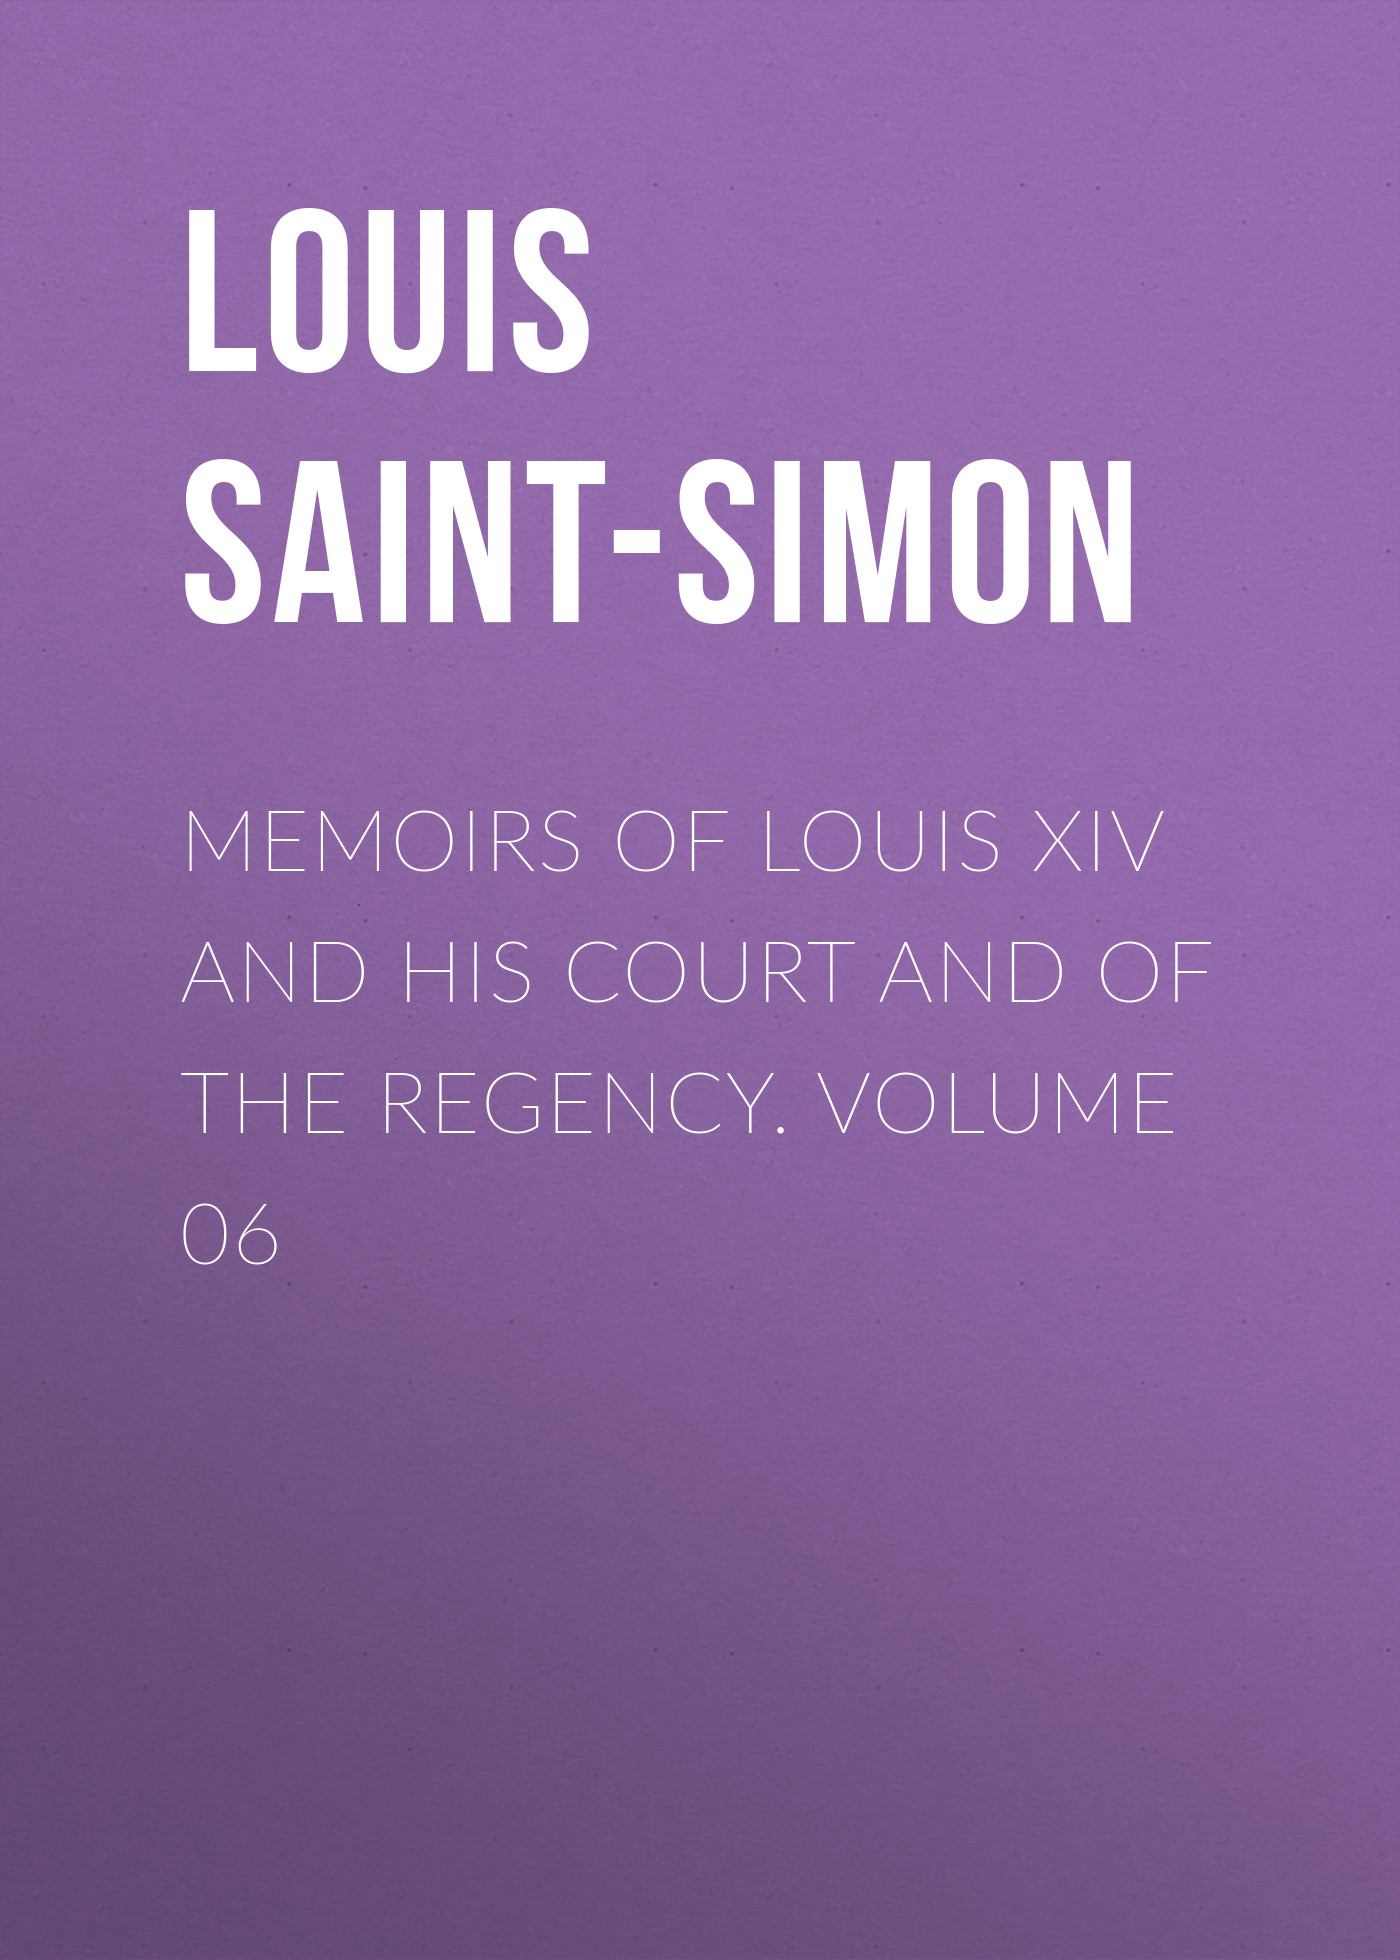 Фото - Louis Saint-Simon Memoirs of Louis XIV and His Court and of the Regency. Volume 06 jules marcou life letters and works of louis agassiz volume i